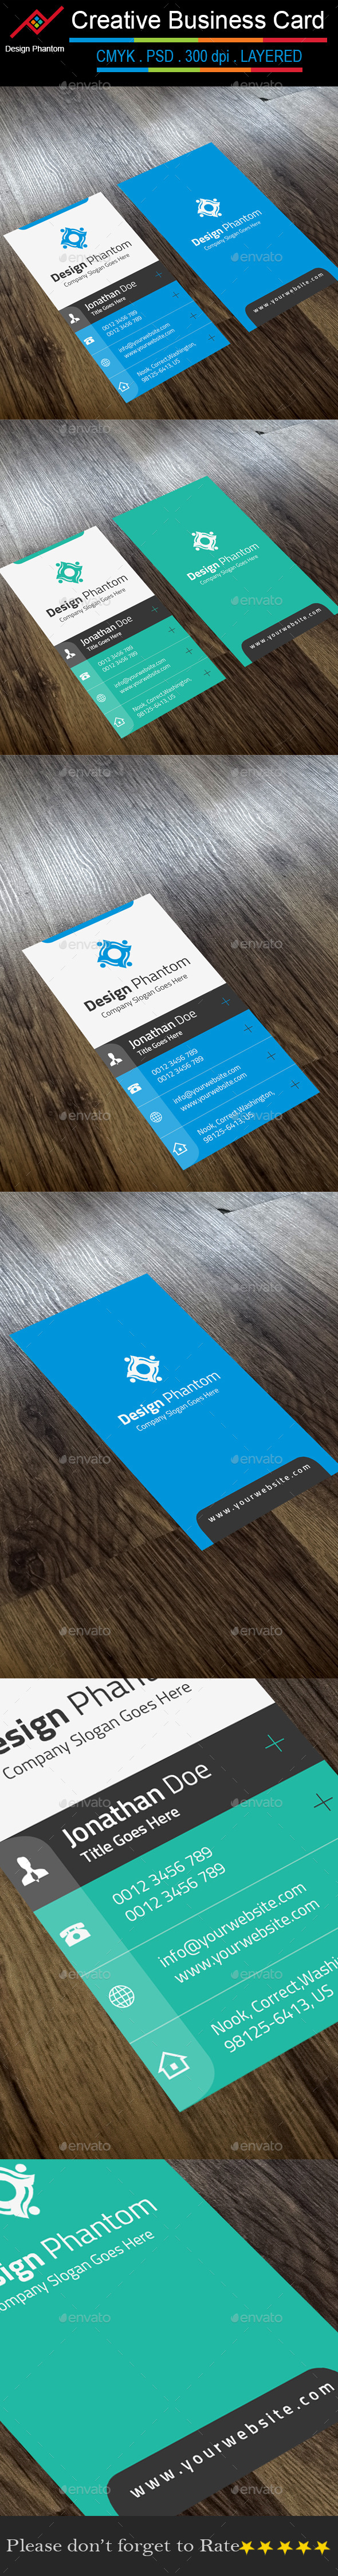 GraphicRiver Creative Business Card 9720931